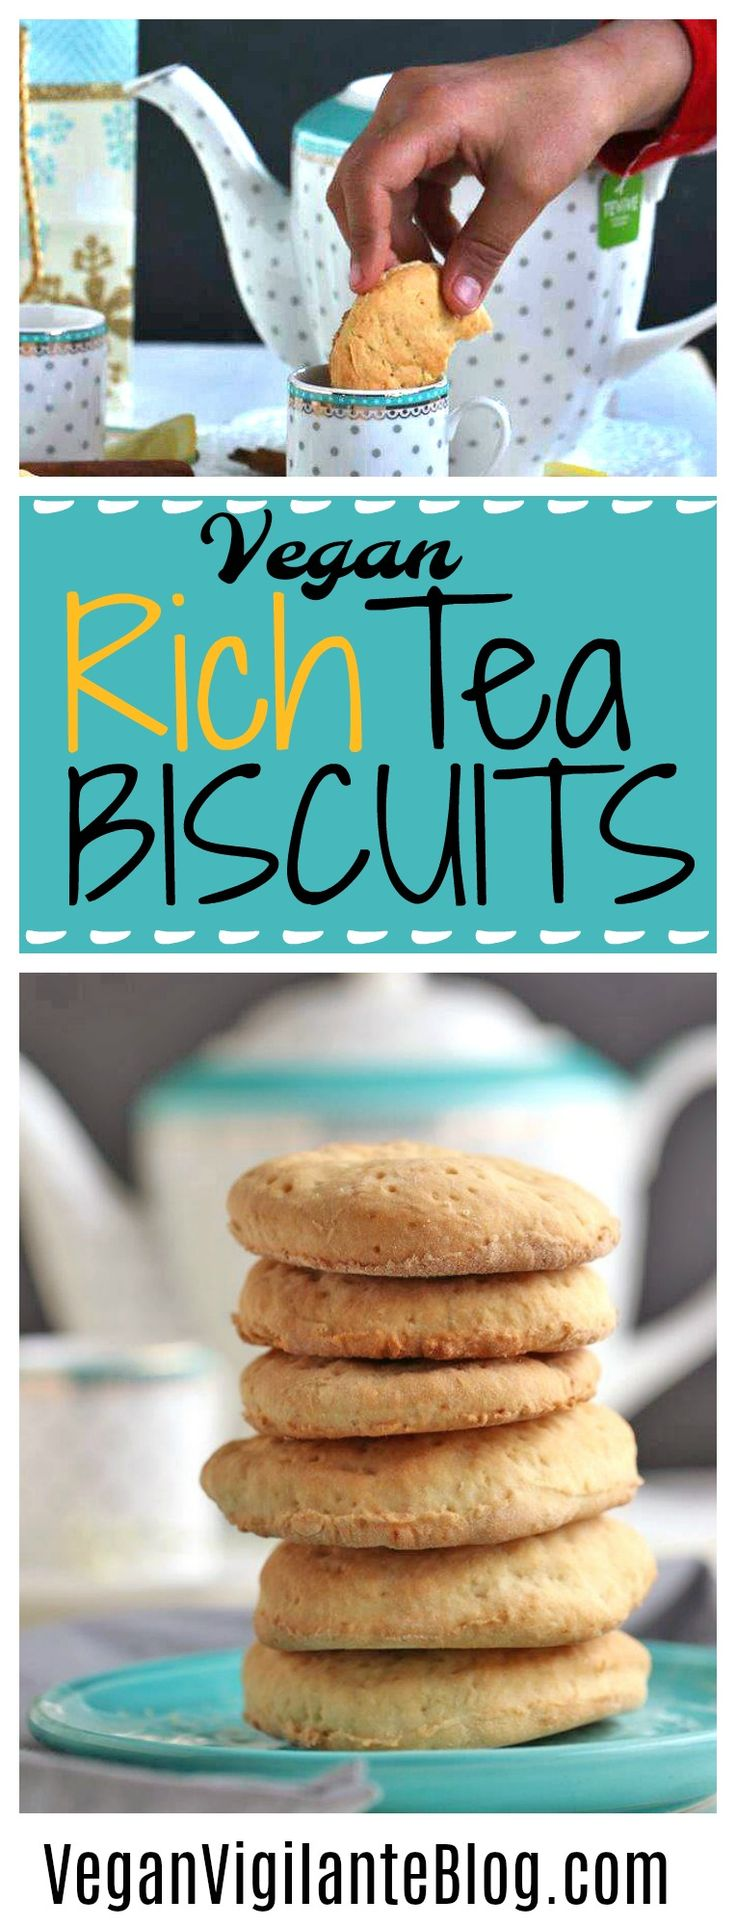 A little salty with a hint of sweet, these Vegan Rich Tea Biscuits require only 6 ingredients and 20 minutes to make; the the perfect dunkable snack to go with your afternoon tea.